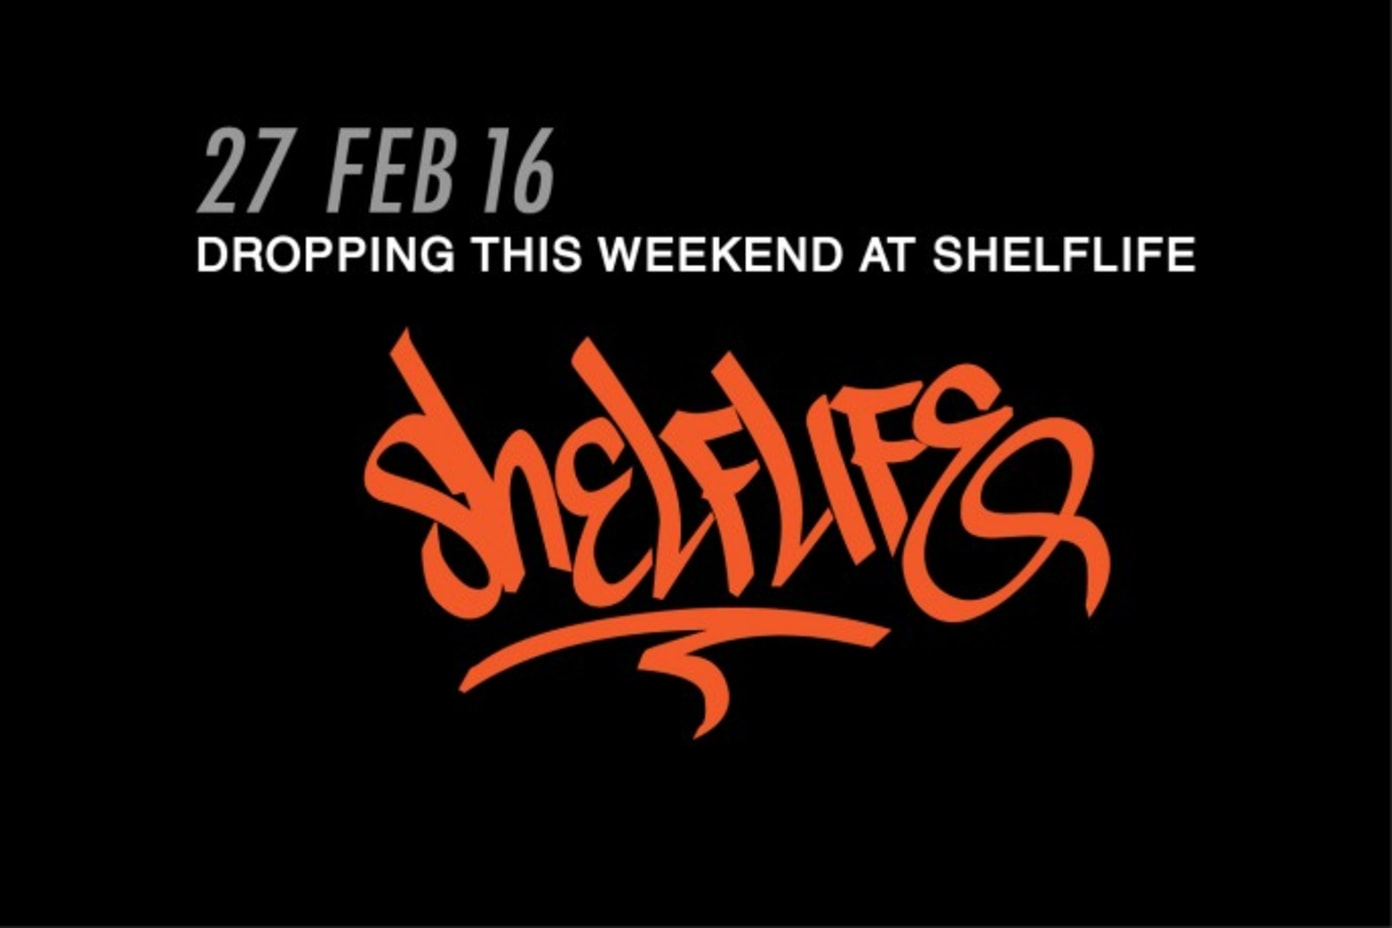 SHELFLIFE: Releasing this weekend